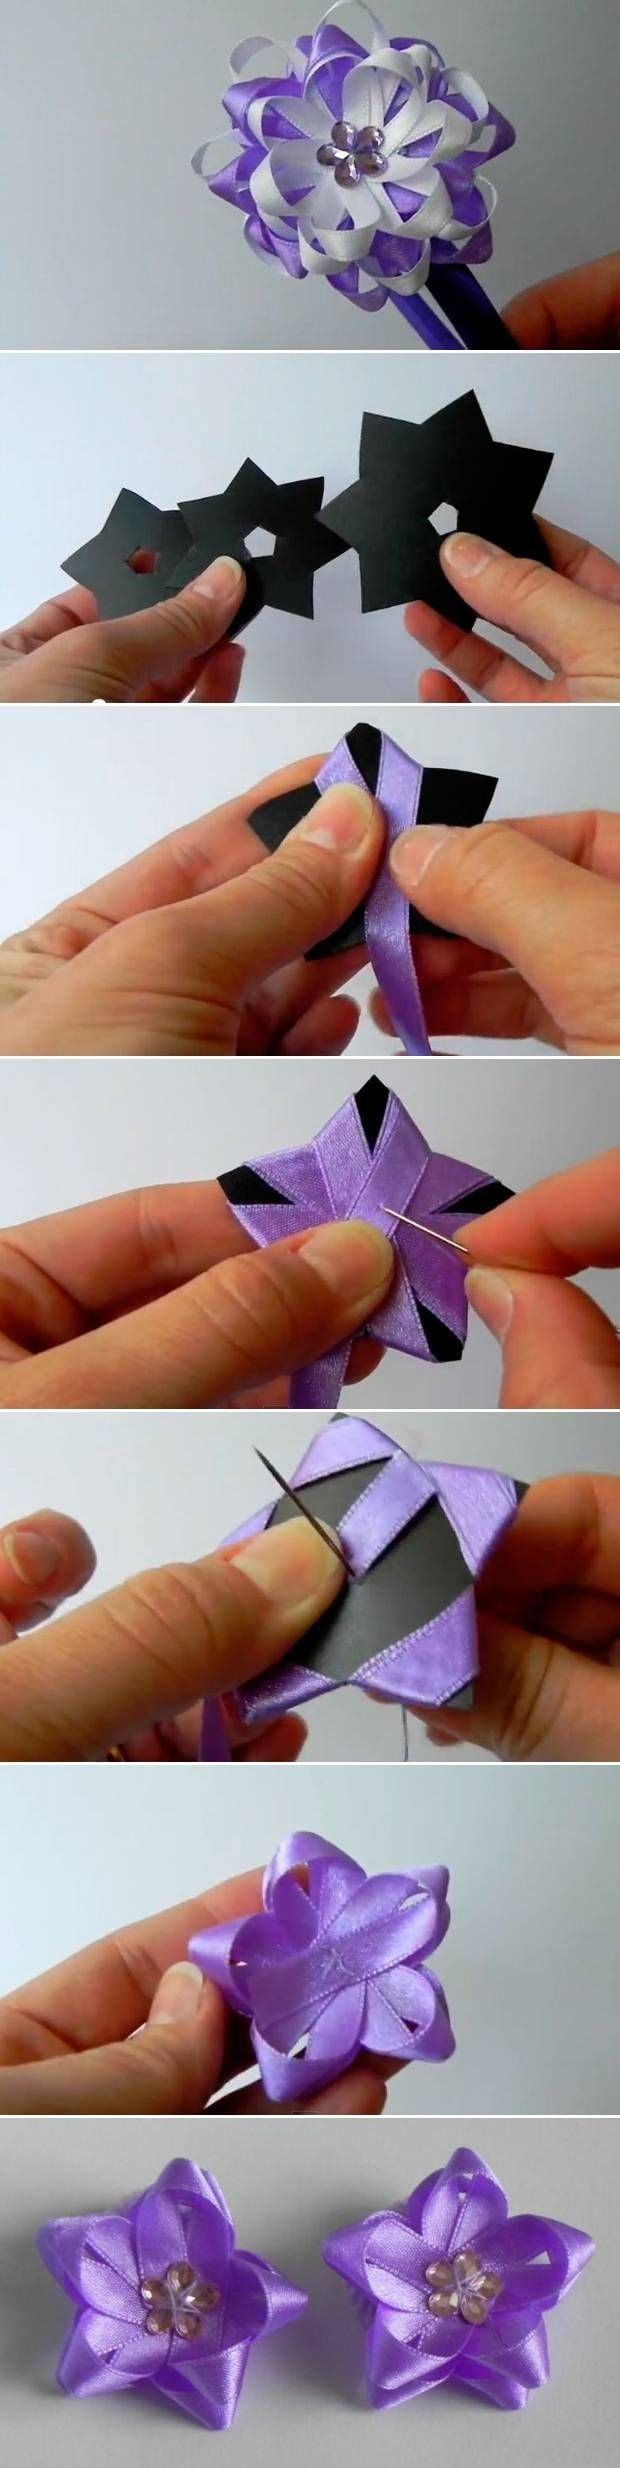 DIY Quick Flower Bow flowers diy crafts home made easy crafts craft idea crafts ideas diy ideas diy crafts diy idea do it yourself diy projects diy craft handmade